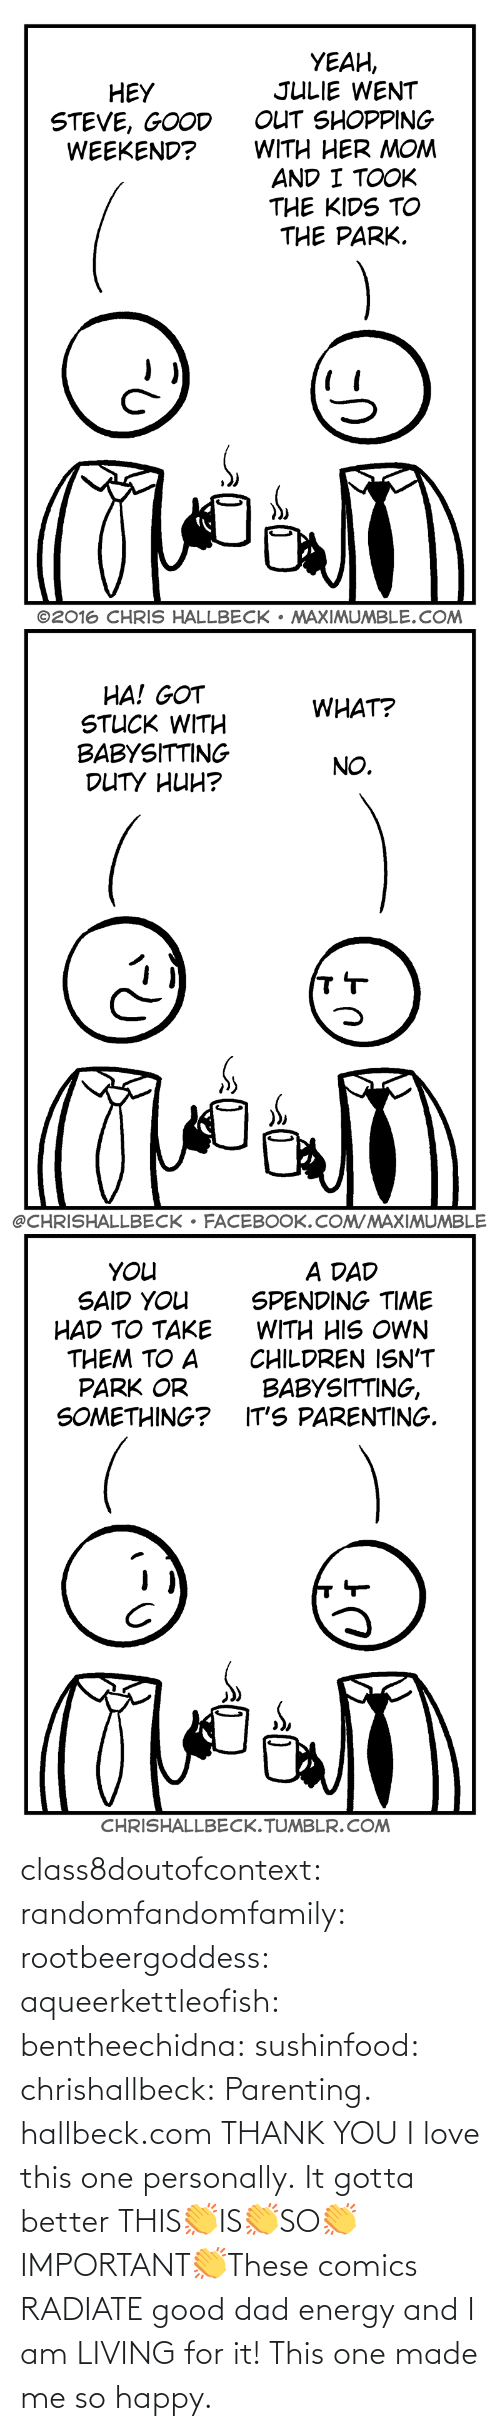 amp: class8doutofcontext: randomfandomfamily:  rootbeergoddess:  aqueerkettleofish:  bentheechidna:  sushinfood:  chrishallbeck:  Parenting. hallbeck.com  THANK YOU  I love this one personally.    It gotta better   THIS👏IS👏SO👏IMPORTANT👏These comics RADIATE good dad energy and I am LIVING for it!    This one made me so happy.